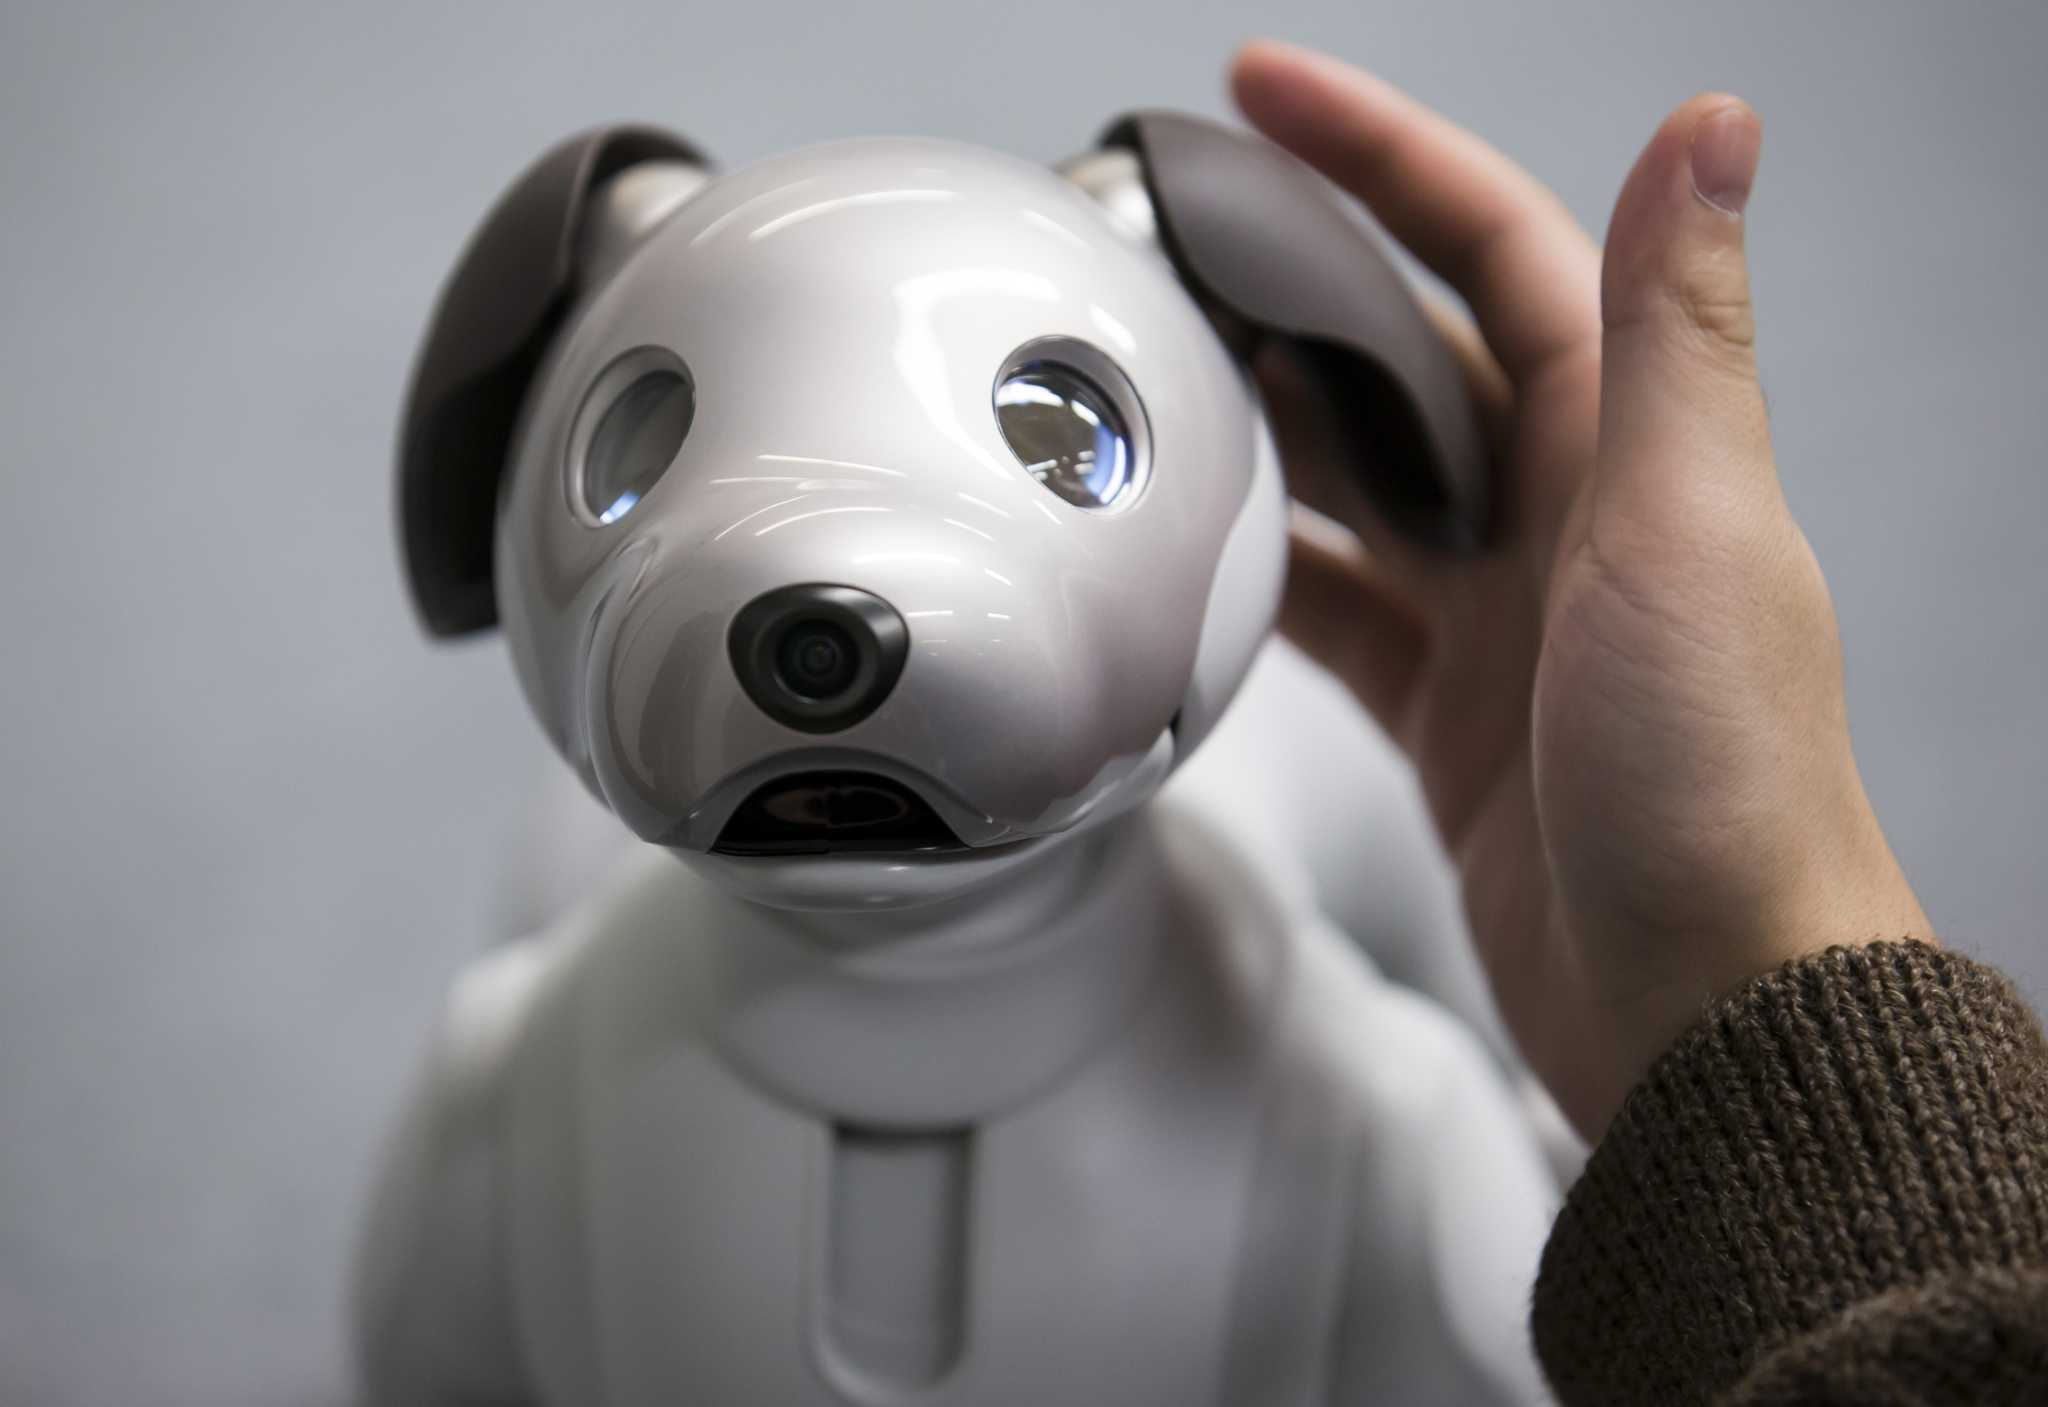 Aibo the robot dog will melt your heart with mechanical precision - SFGate